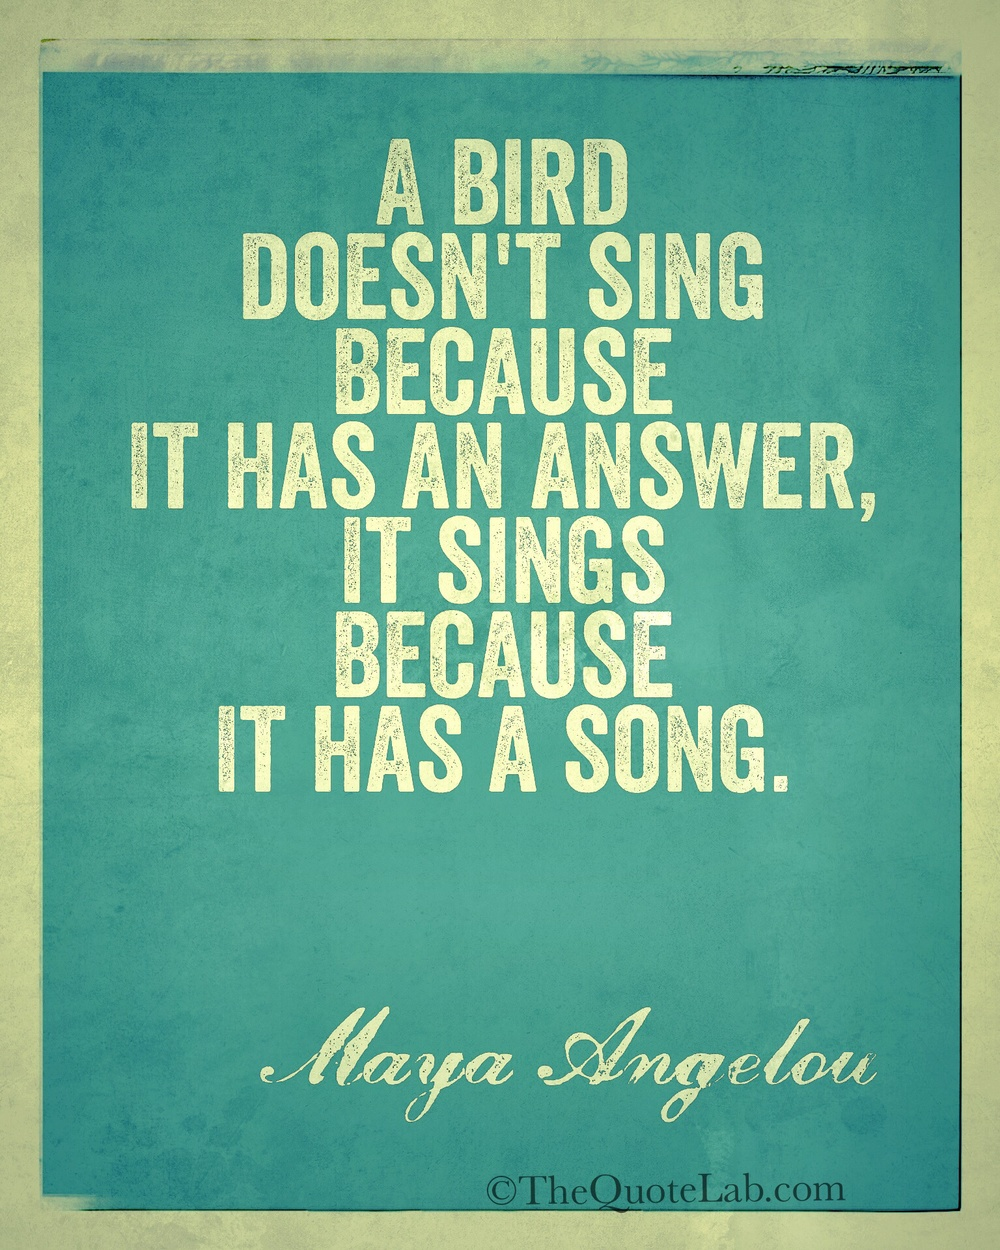 """A bird doesn't sing because it has an answer, it sings because it has a song."" -Maya Angelou"